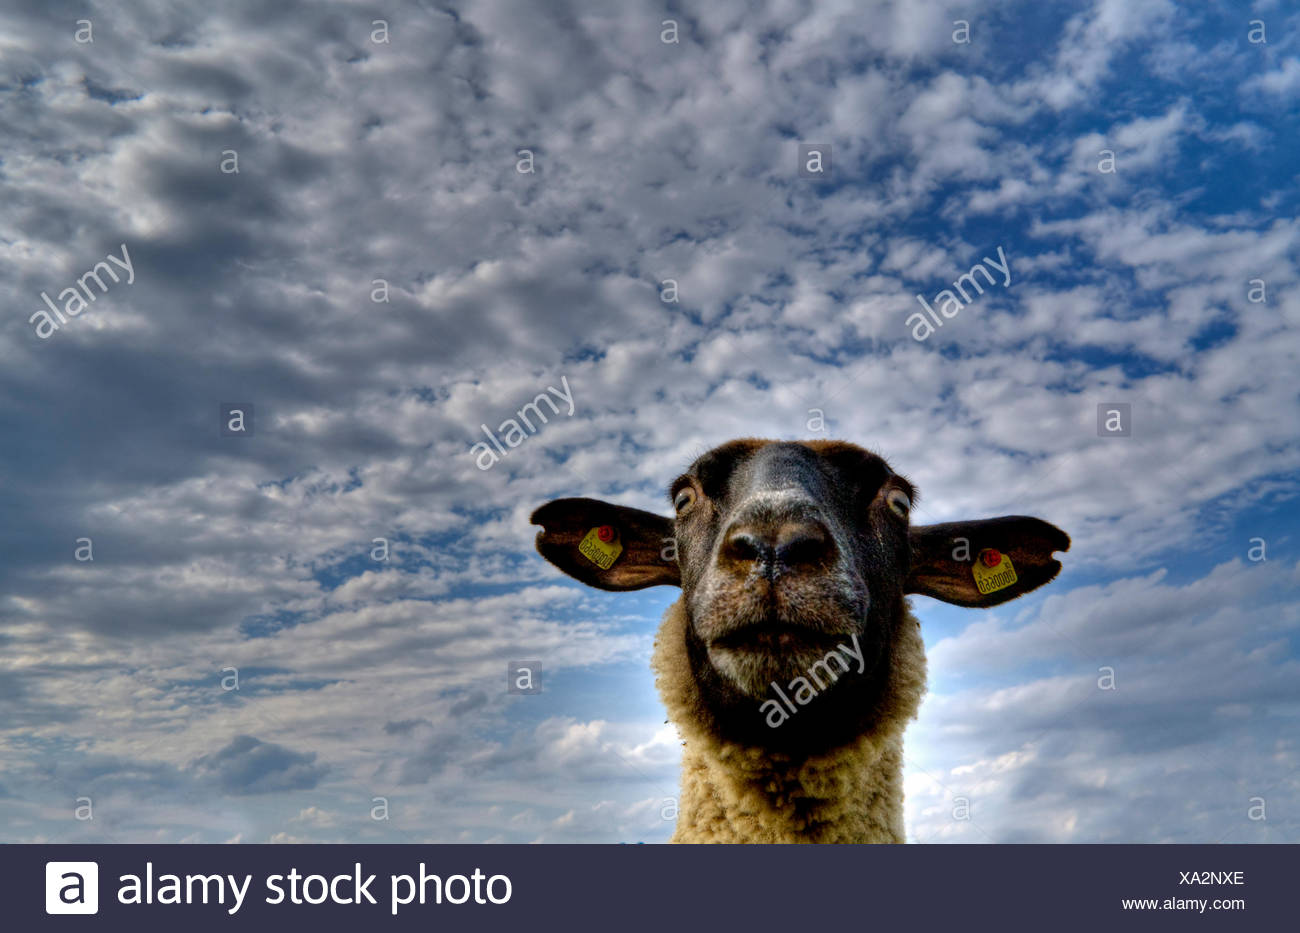 worms eye animal sheep - Stock Image